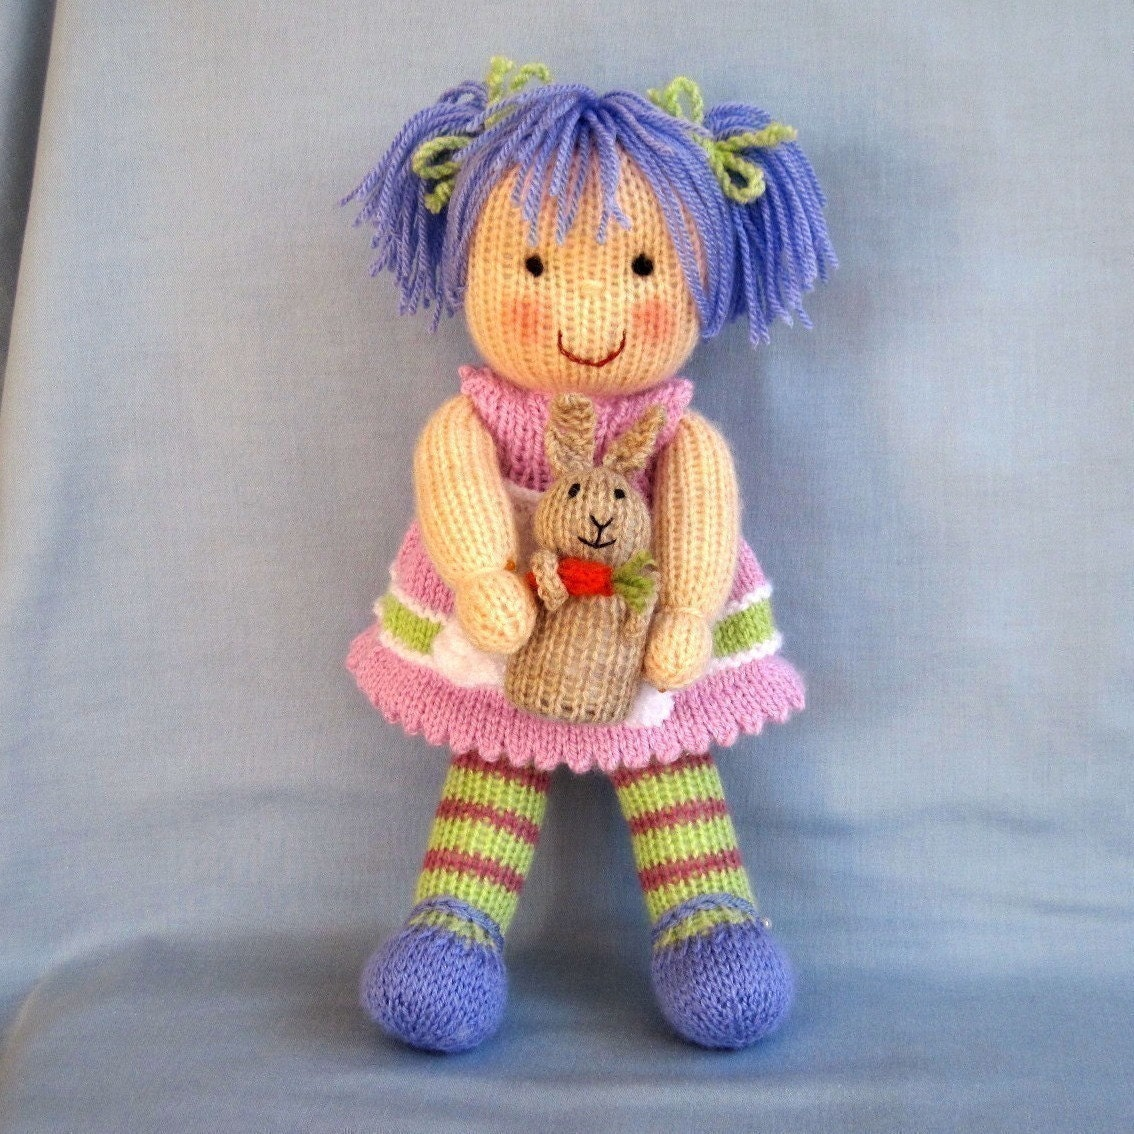 LUCY LAVENDER and her RABBIT knitted toy doll Pdf email